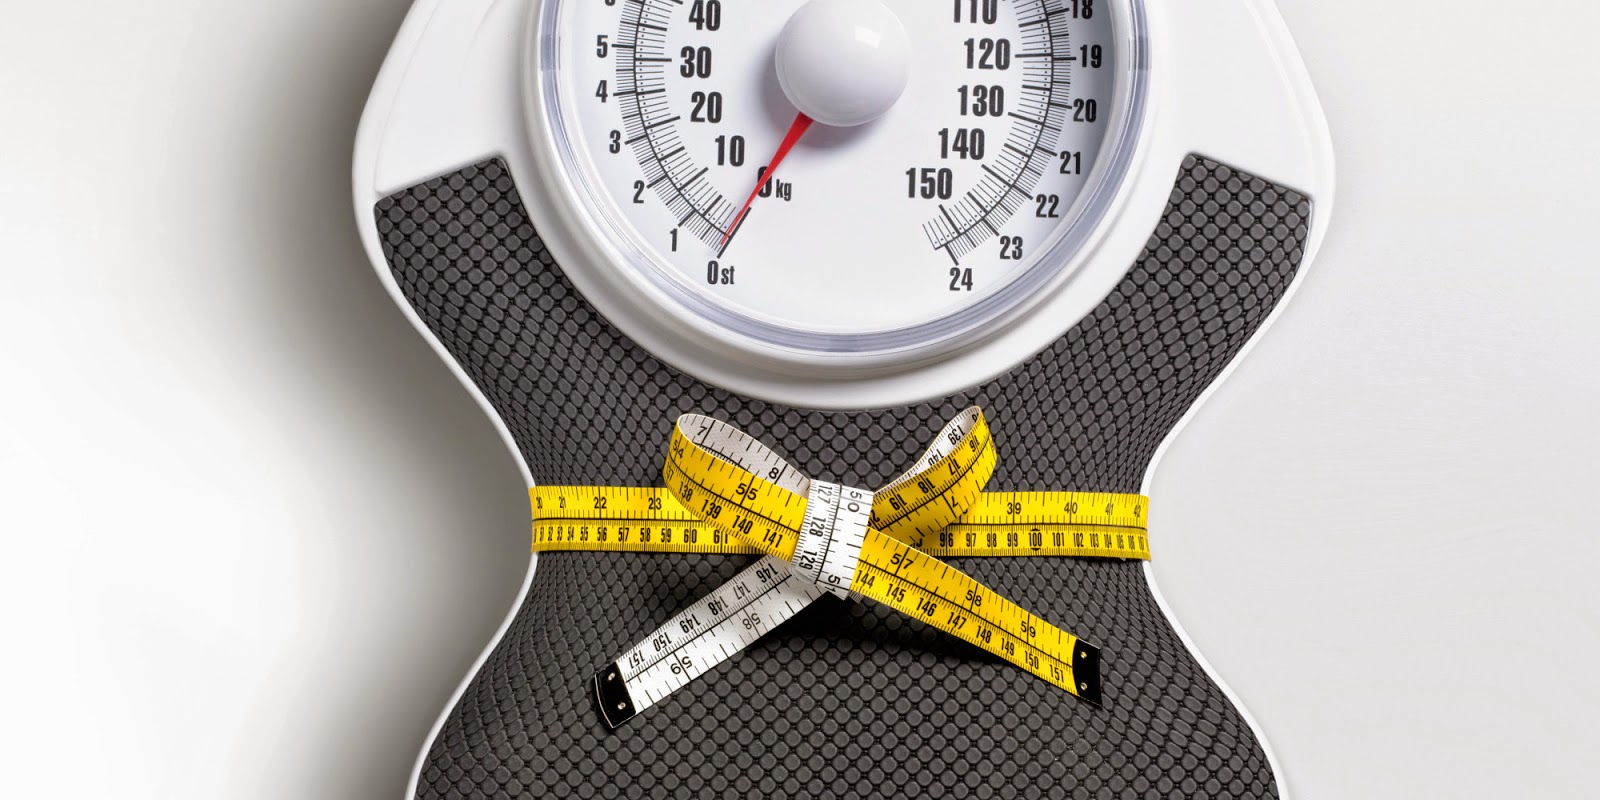 10 of the best ways to lose weight